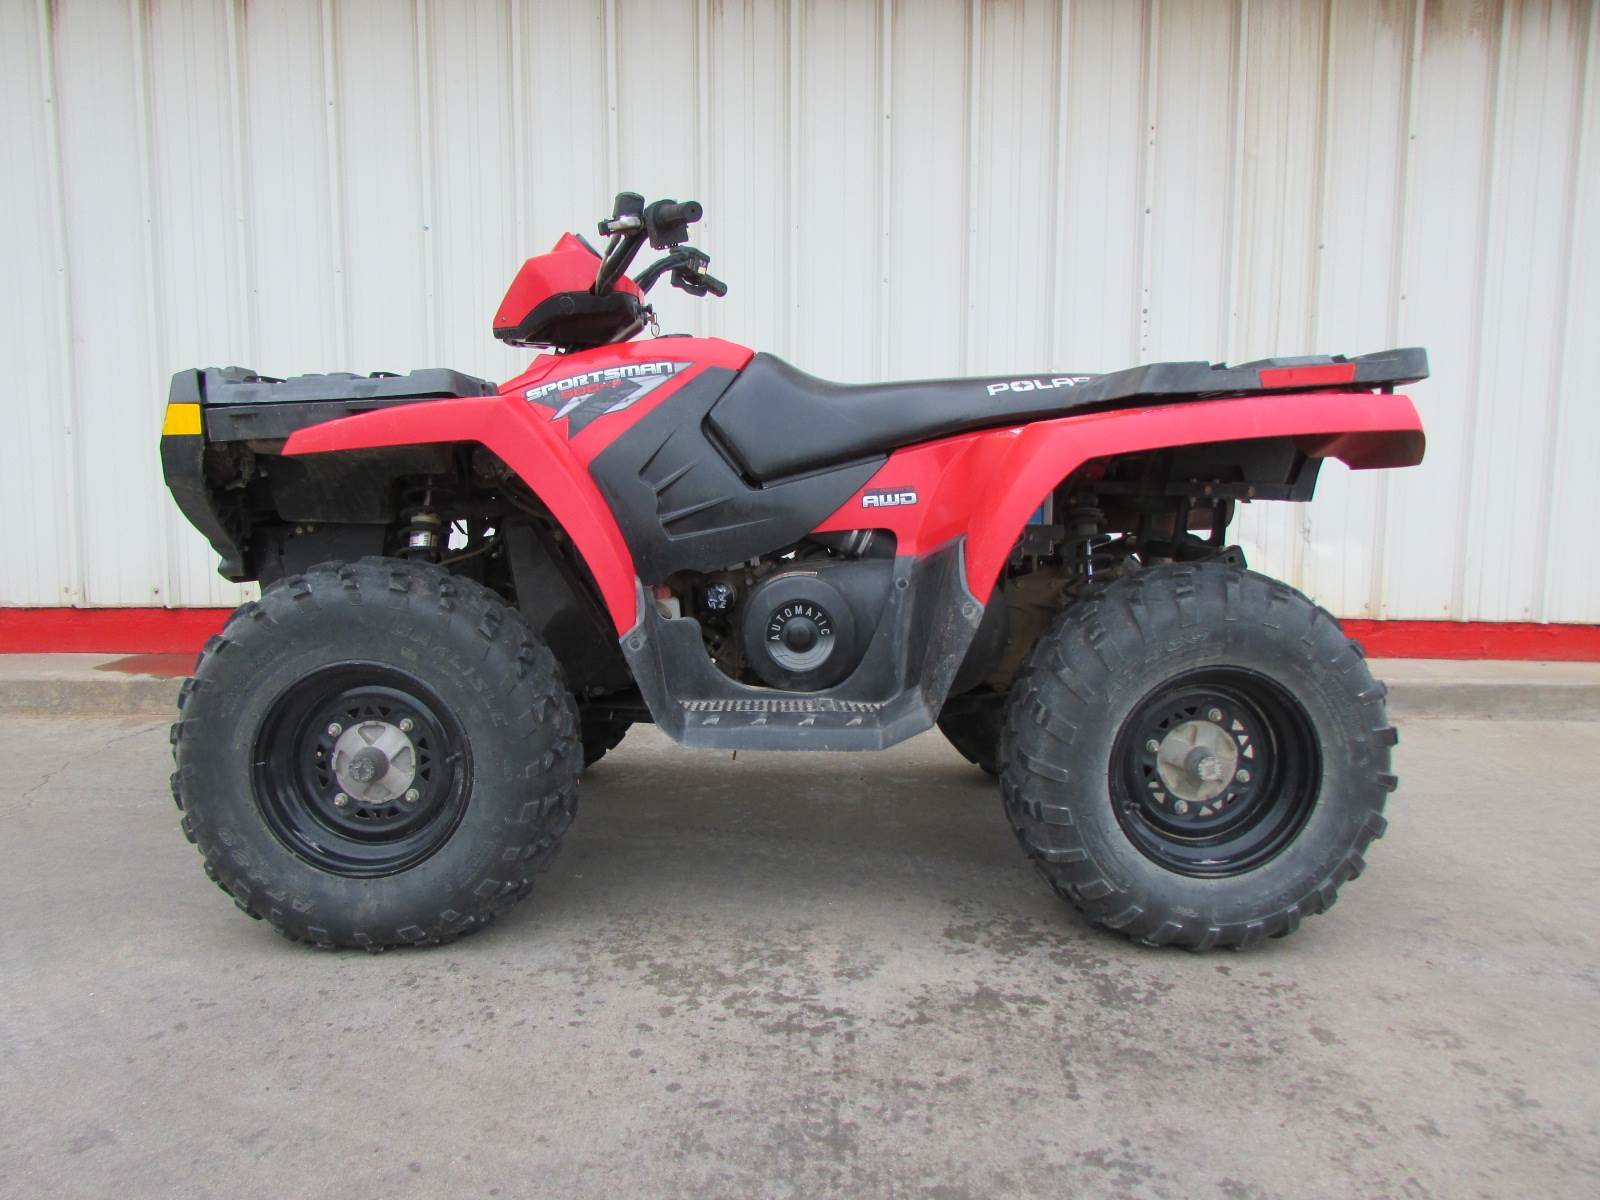 2010 Polaris Sportsman® 500 H.O. in Wichita Falls, Texas - Photo 2